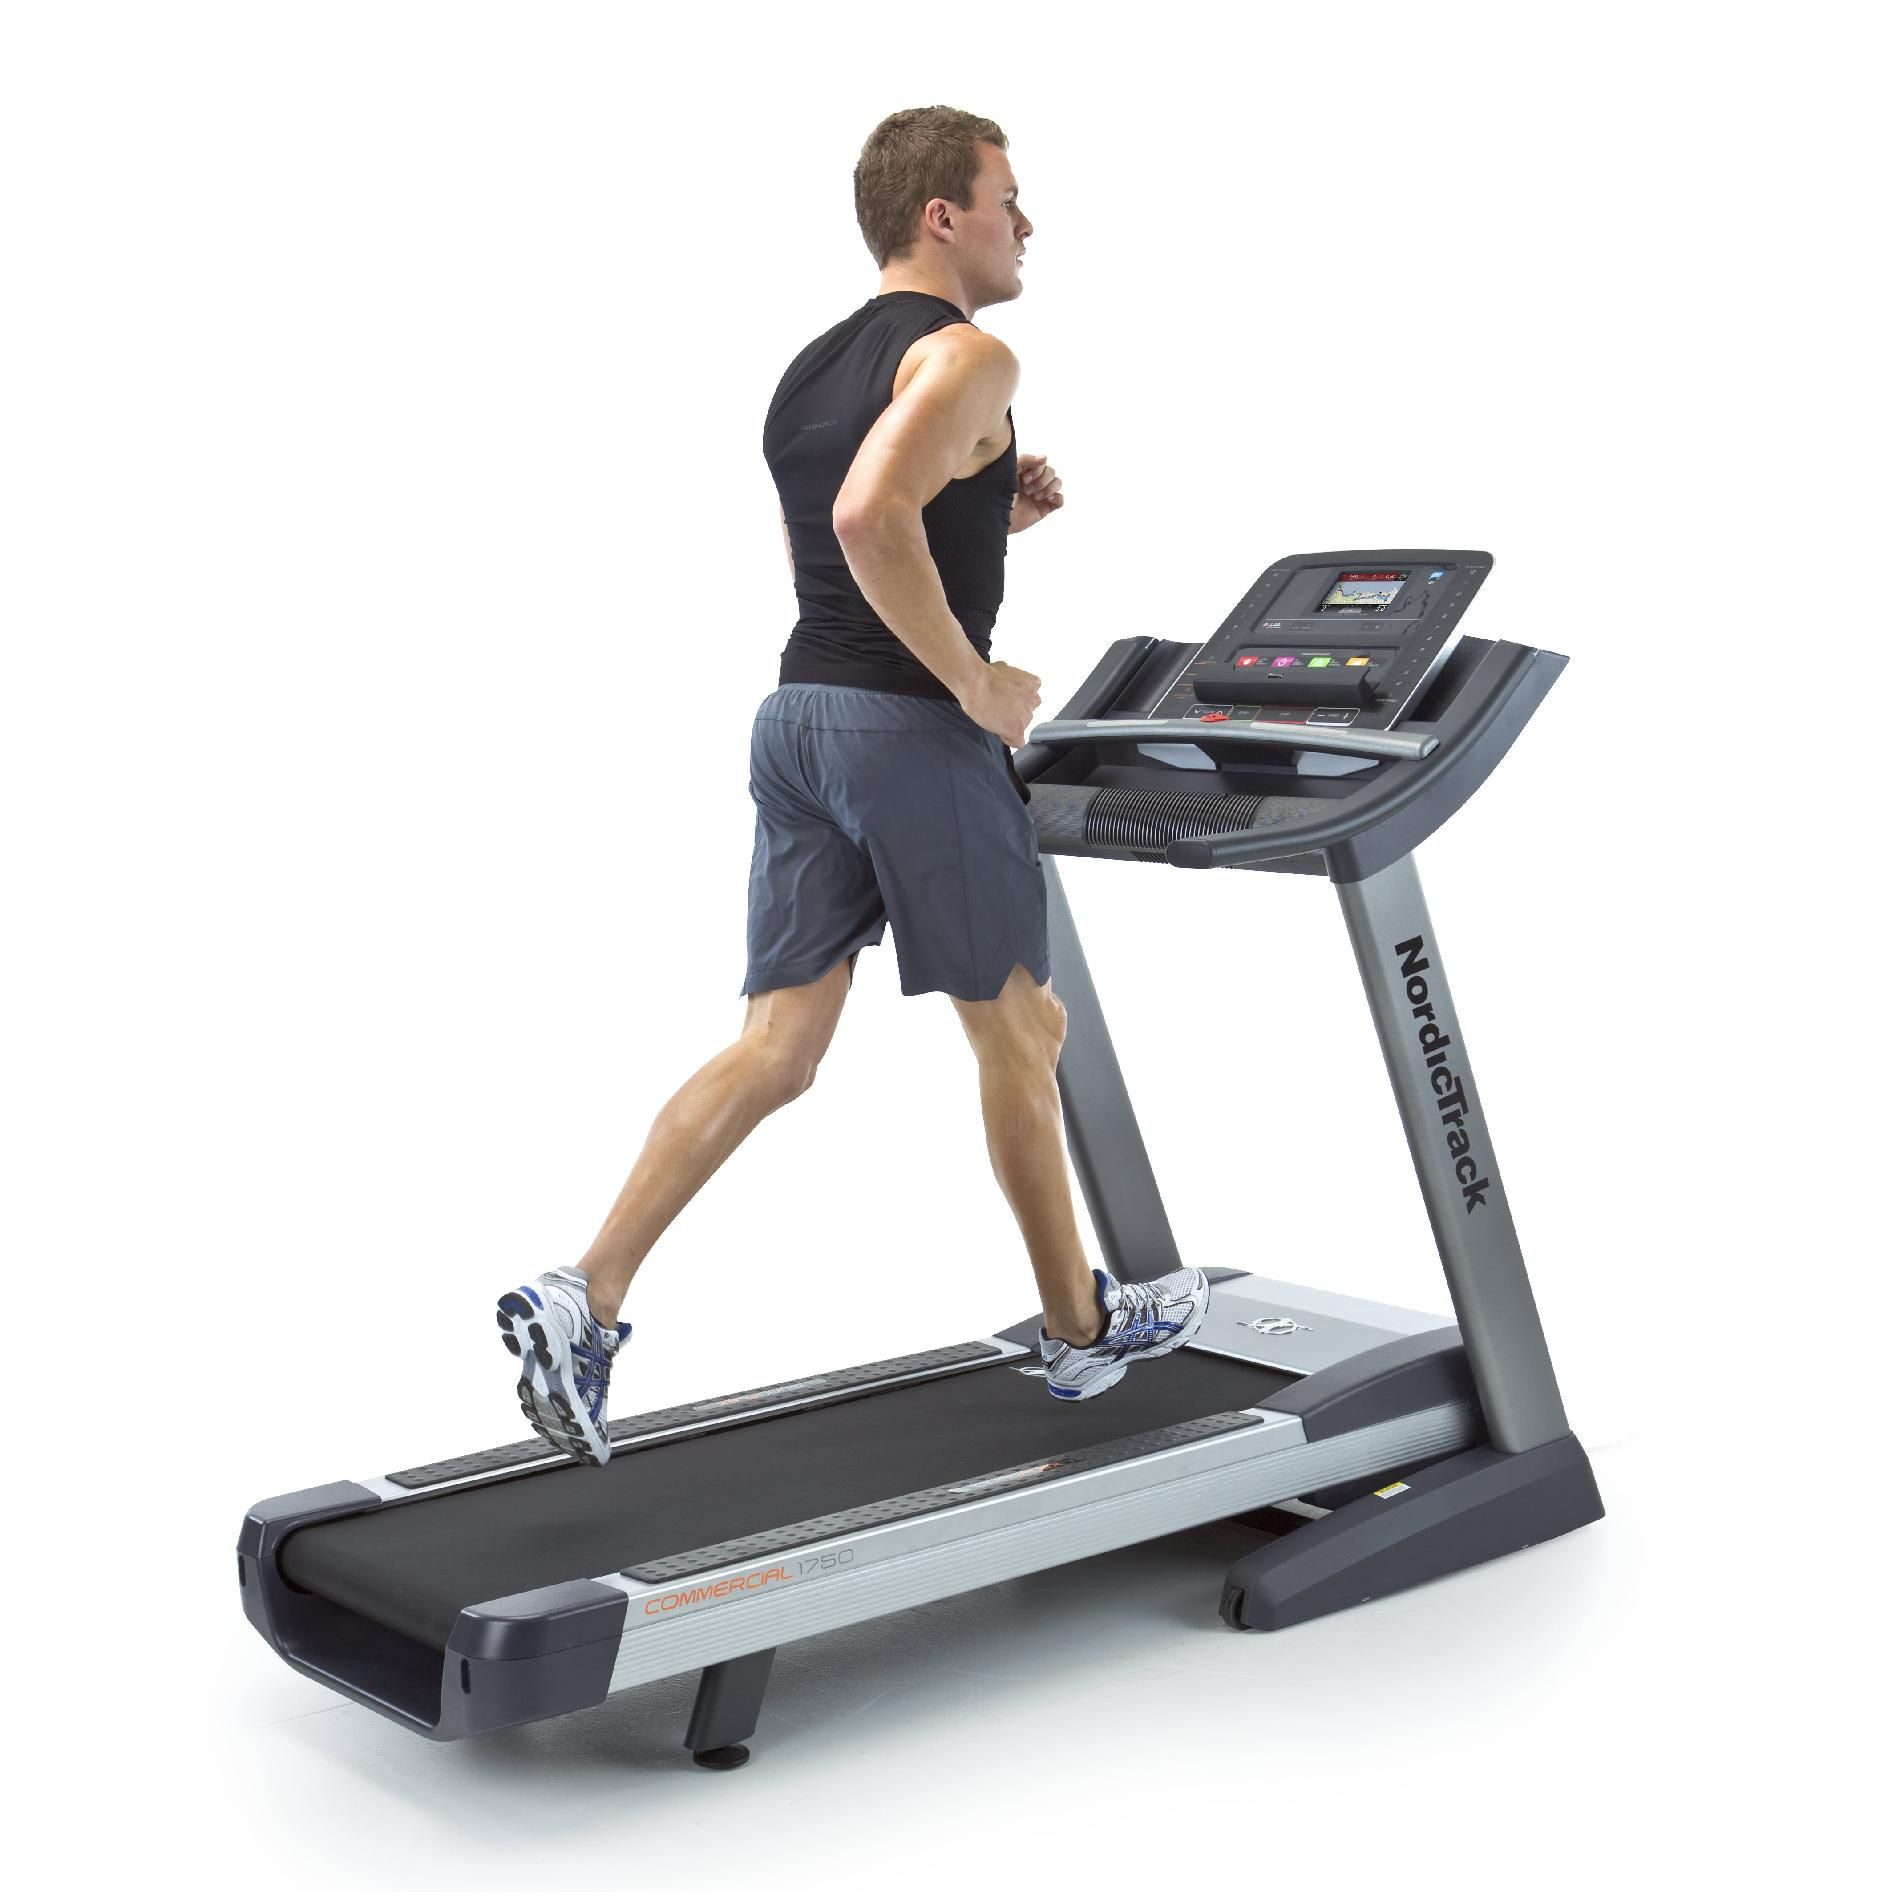 NordicTrack C 1750 Treadmill - New For 2012!